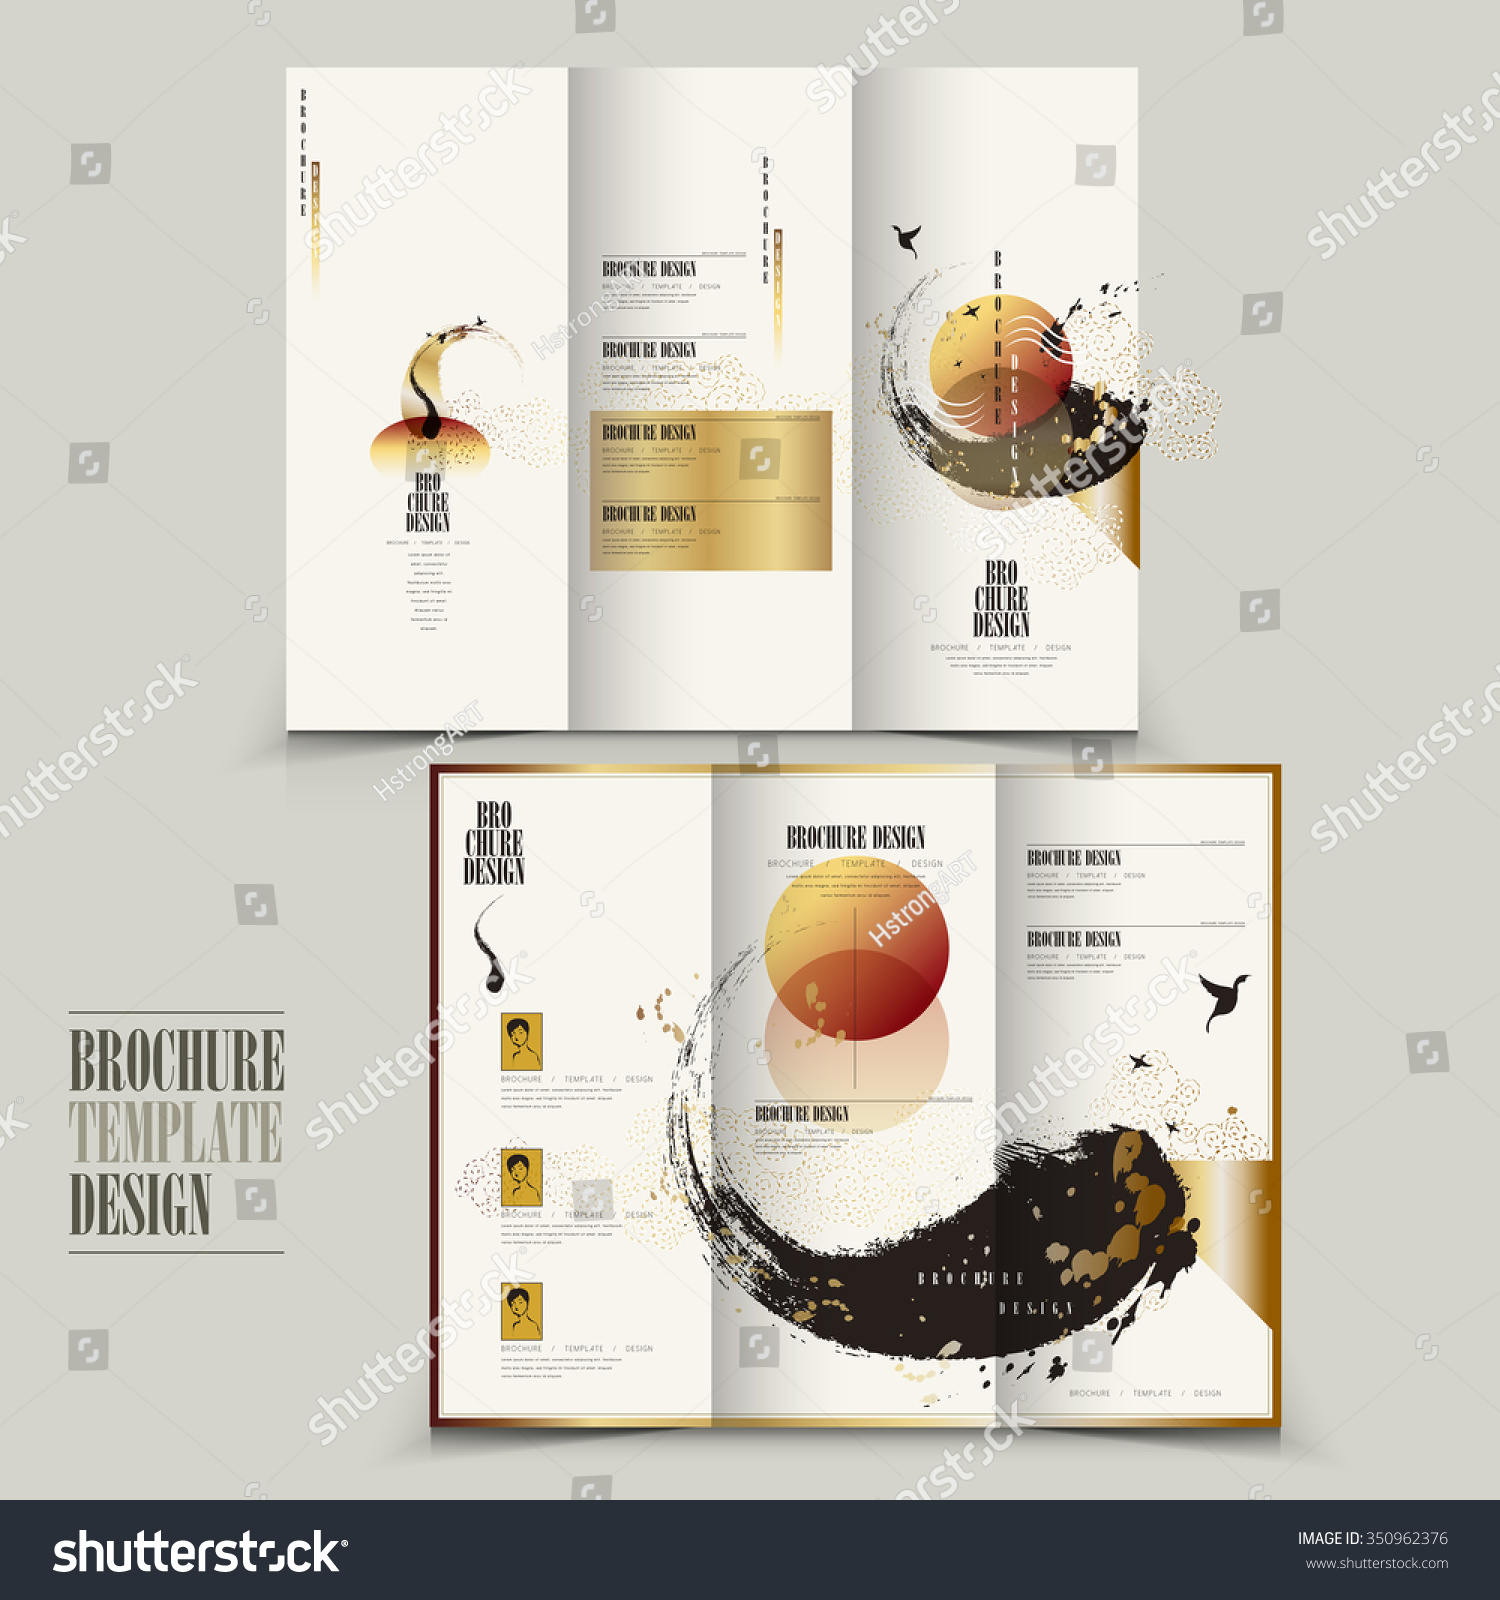 Modern tri fold brochure template design with attractive for Attractive brochure designs